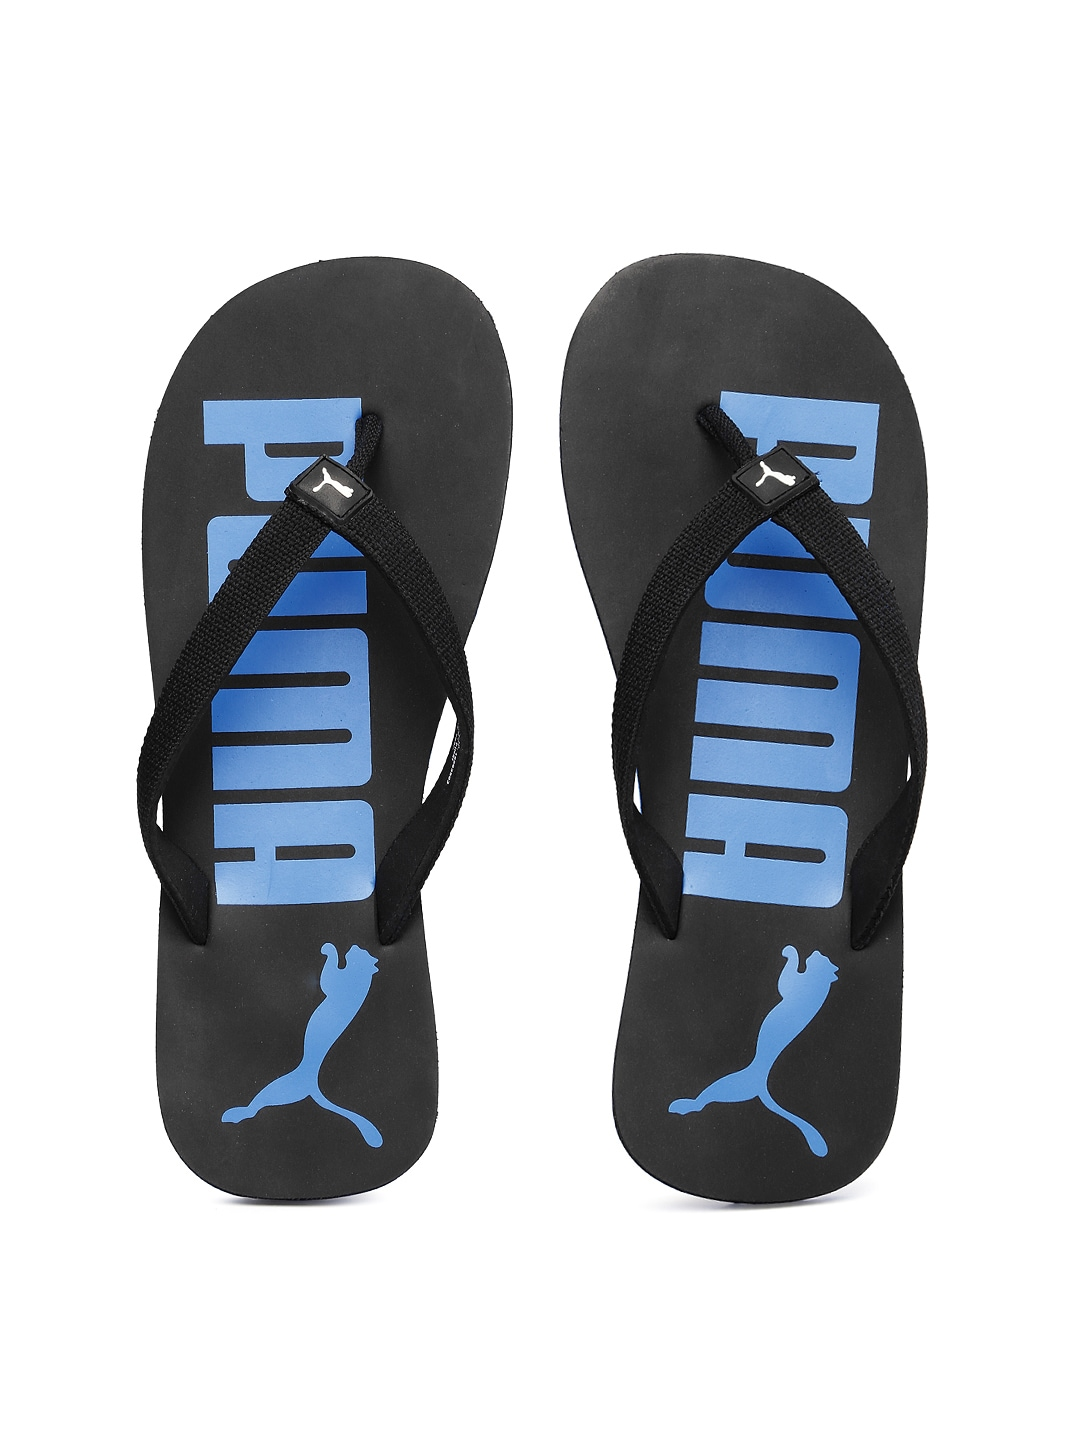 ed59a685f0327 Puma Myntra Flip Flops Sports Sandals - Buy Puma Myntra Flip Flops Sports  Sandals online in India